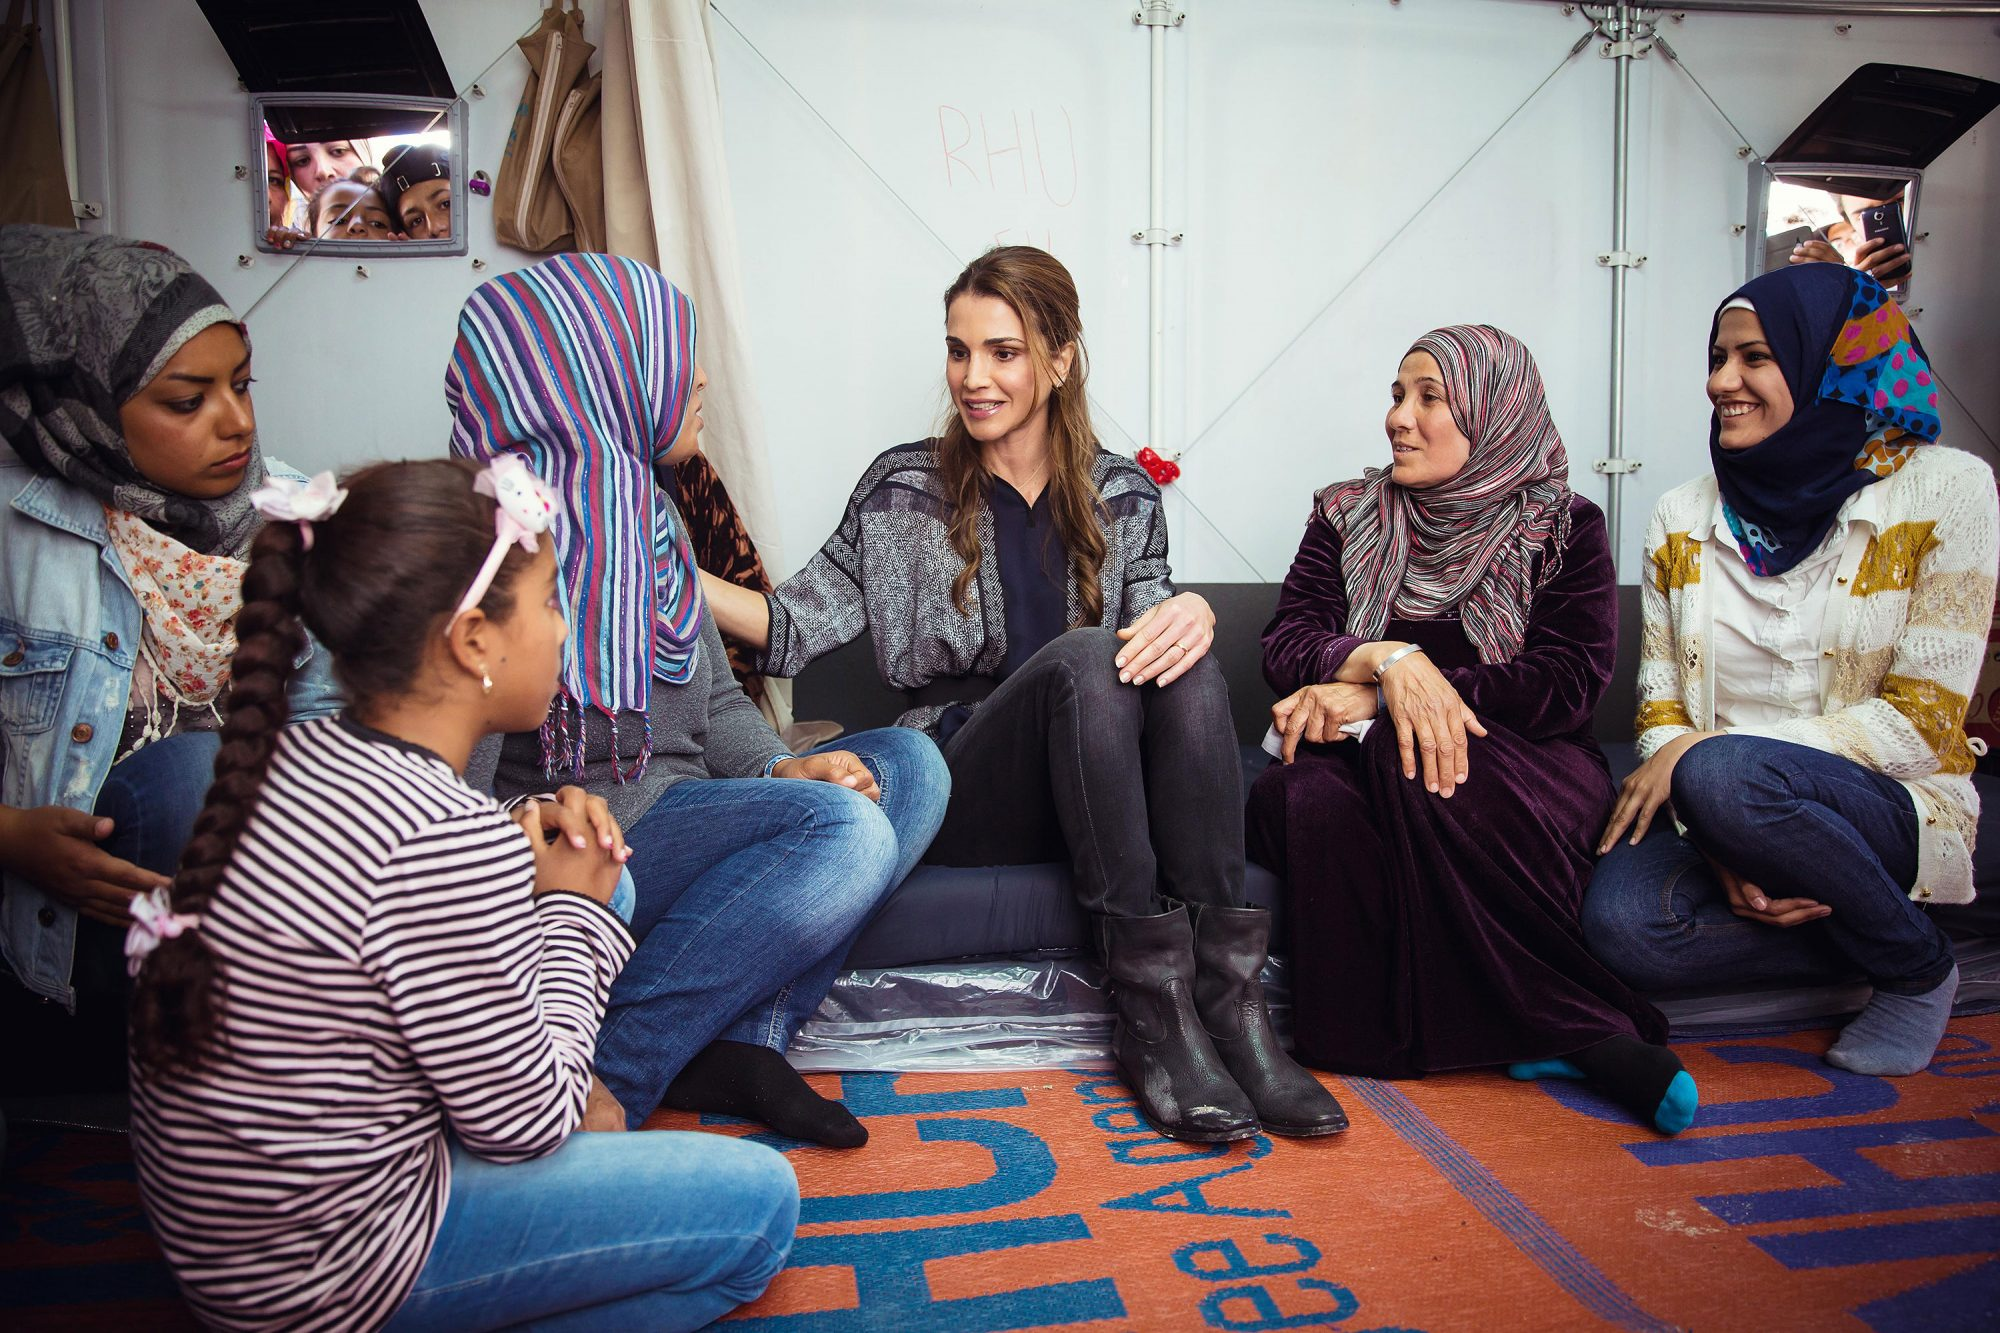 Queen Rania of Jordan visit to the Kara Tepe Camp in Lesbos, Greece on April 25, 2016, where she met with Syrian refugees